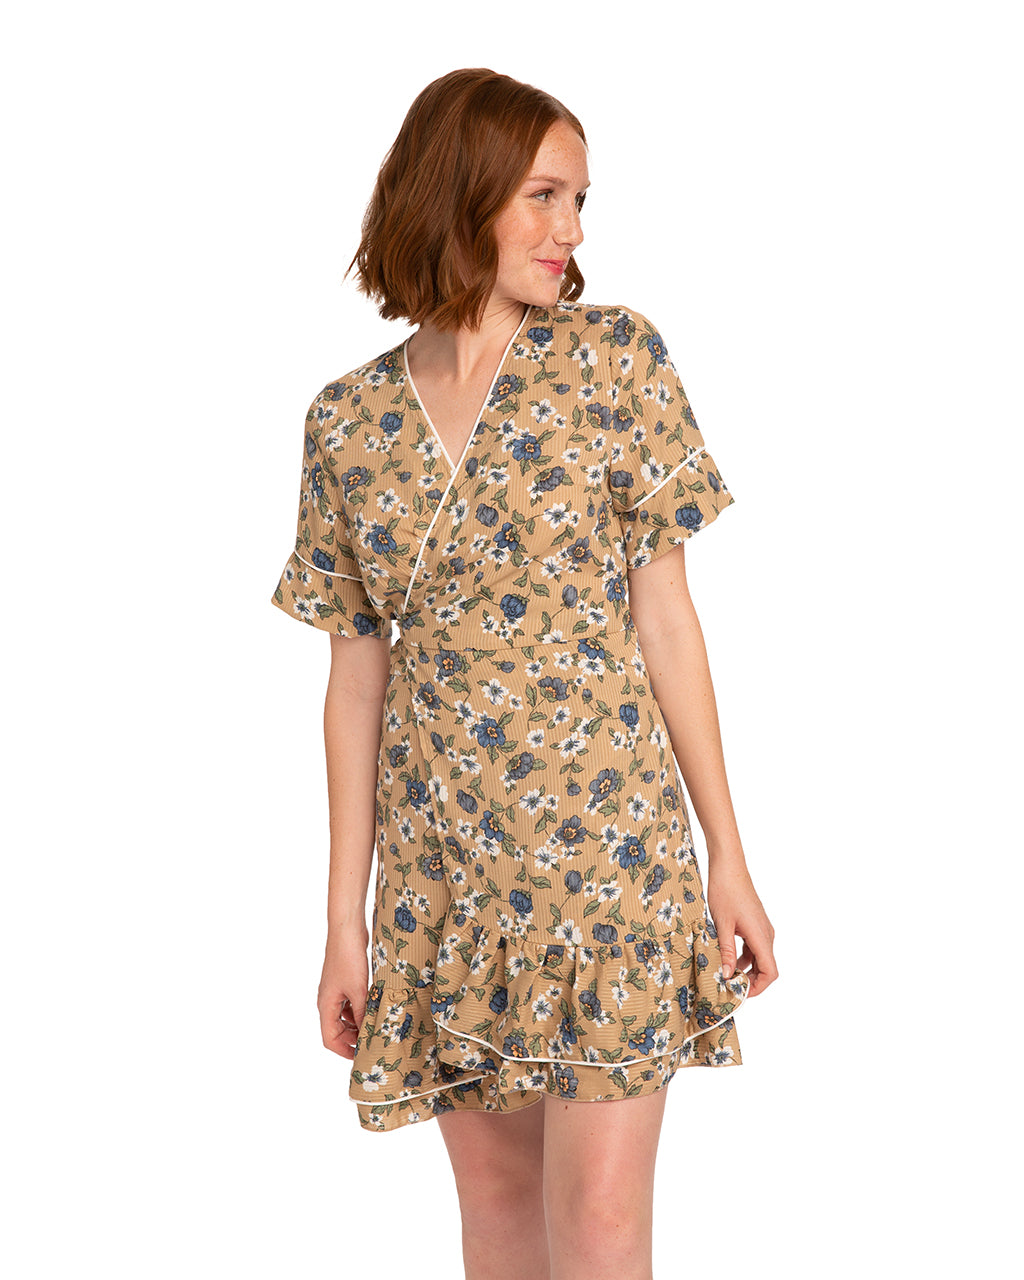 mini wrap floral dress shown on red headed model